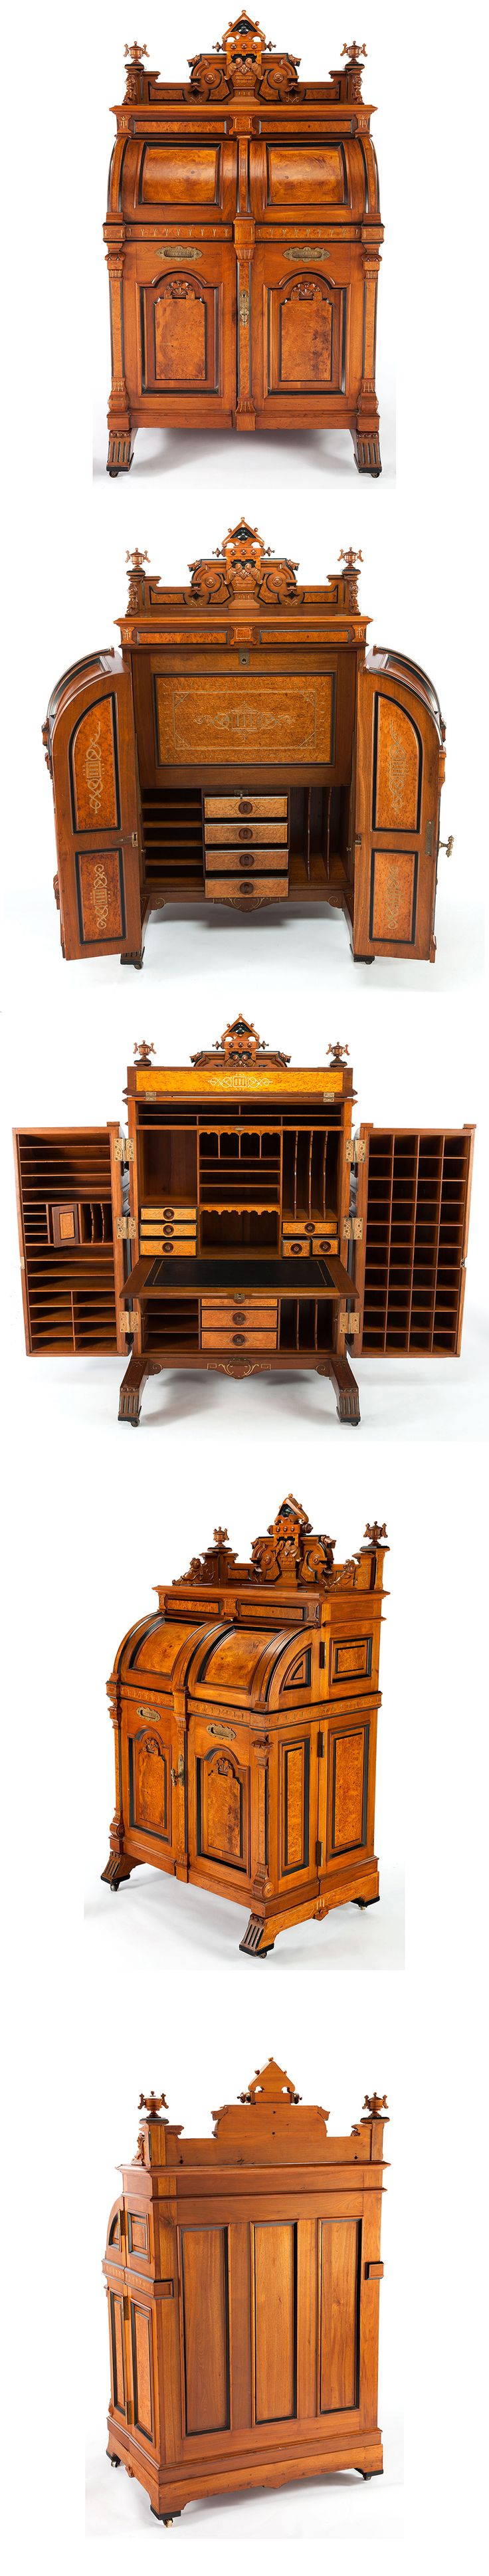 A WOOTEN AMERICAN RENAISSANCE REVIVAL WALNUT PATENT DESK: WOOTEN EXTRA GRADE  Wooten Desk Company, Indianapolis, Indiana, circa 1874  Marks: MANUFACTURED BY THE WOOTEN DESK CO INDIANAPOLIS IND. PAT OCT 6 1874  75 x 46 x 30-1/4 inches (190.5 x 116.8 x 76.8 cm) [Been looking for one of these for ages; this is a very fancy one]